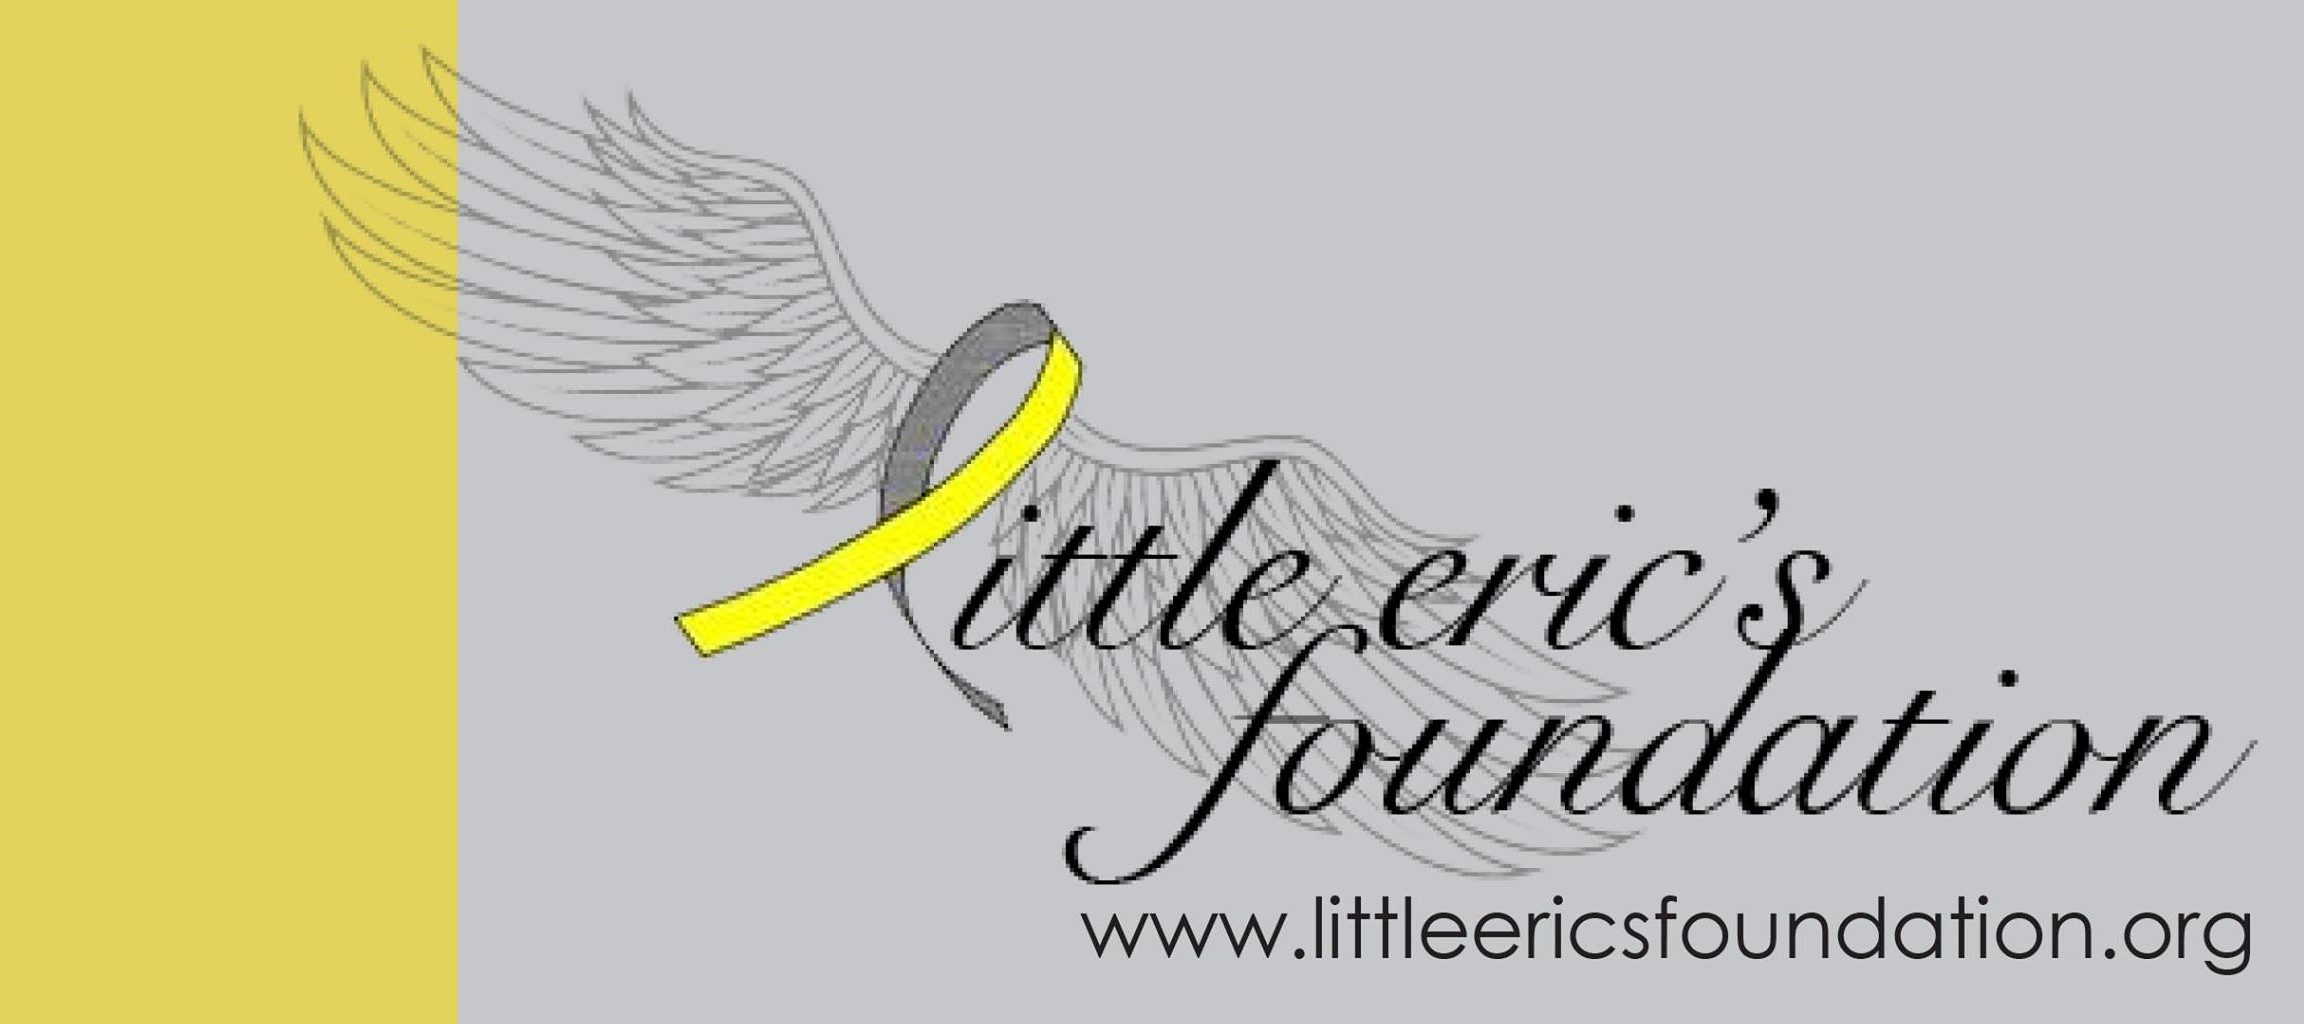 Little Eric's Foundation